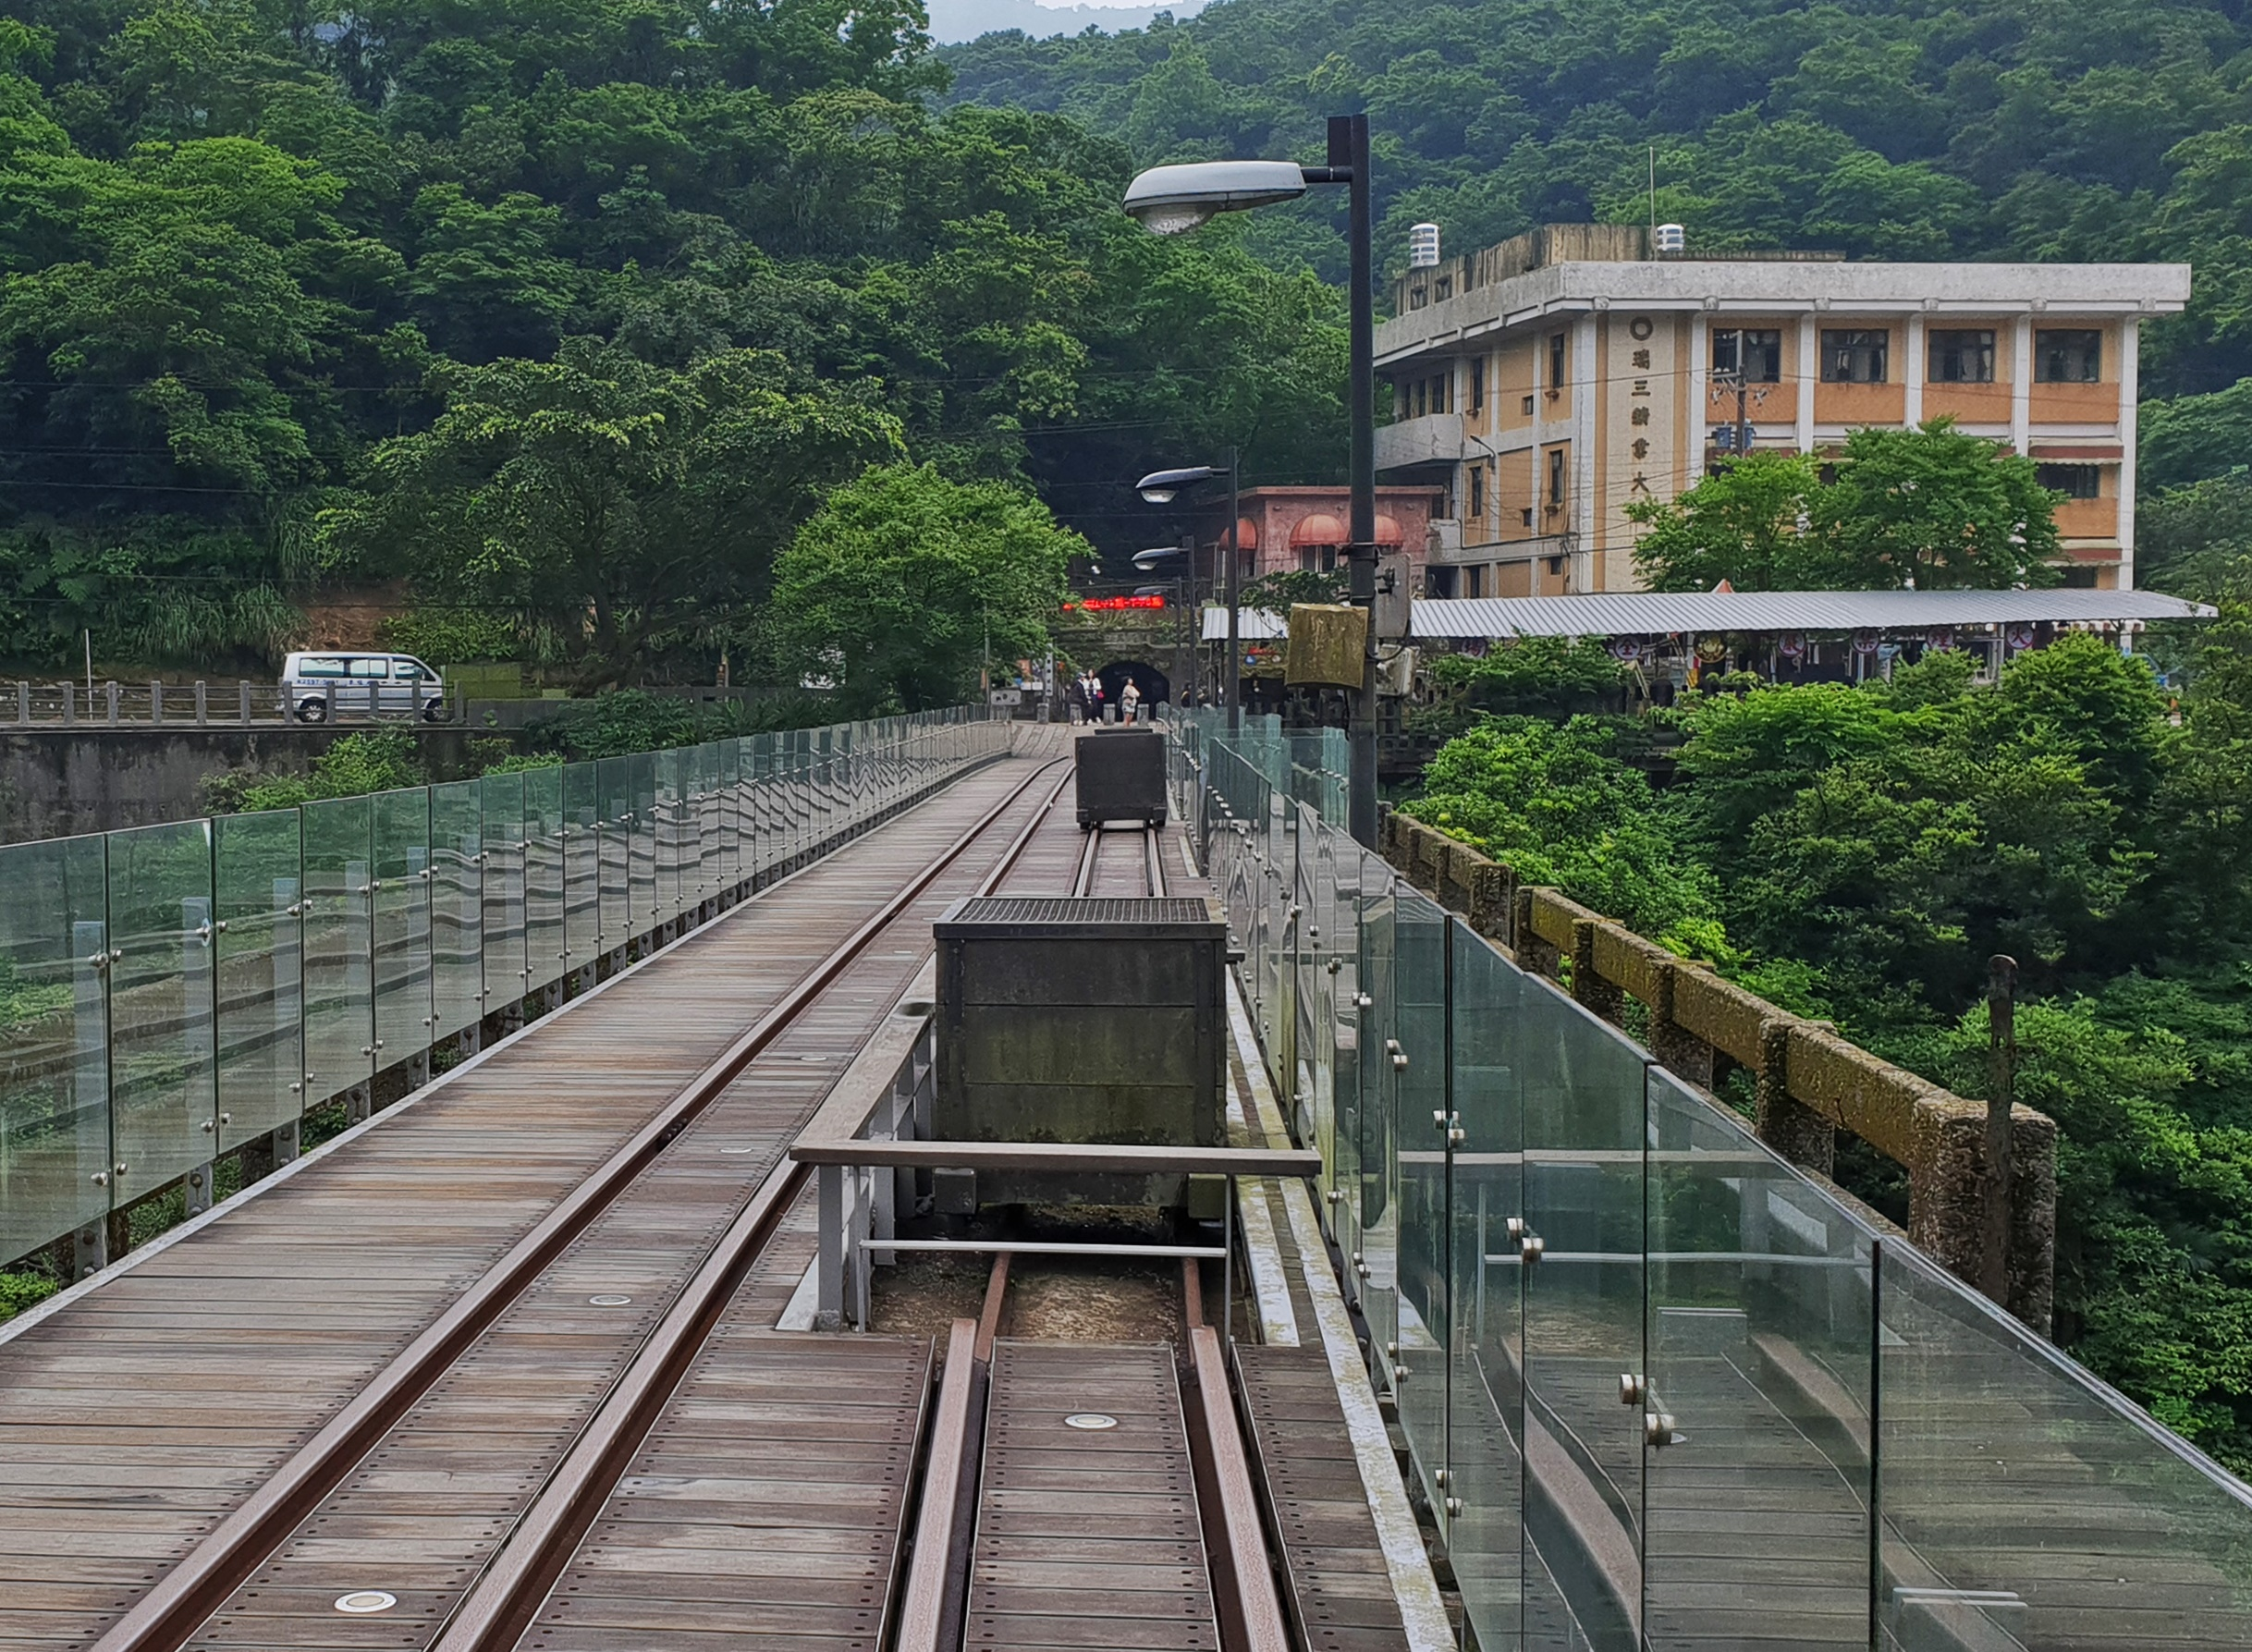 On the bridge with Houtong Mine and the Ruey-San Company Office Building ahead